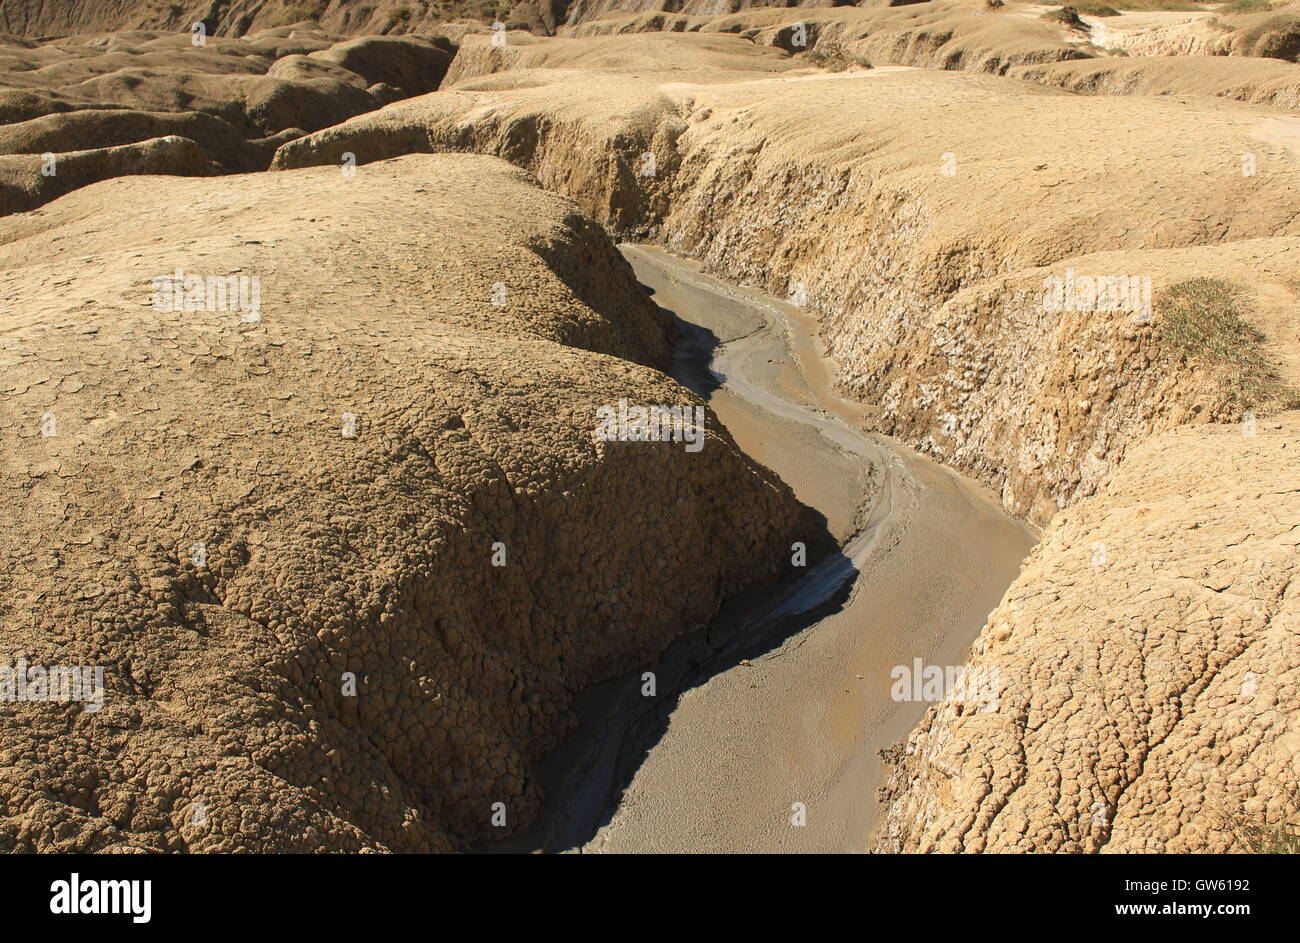 river of mud made by a mud volcano - Stock Image